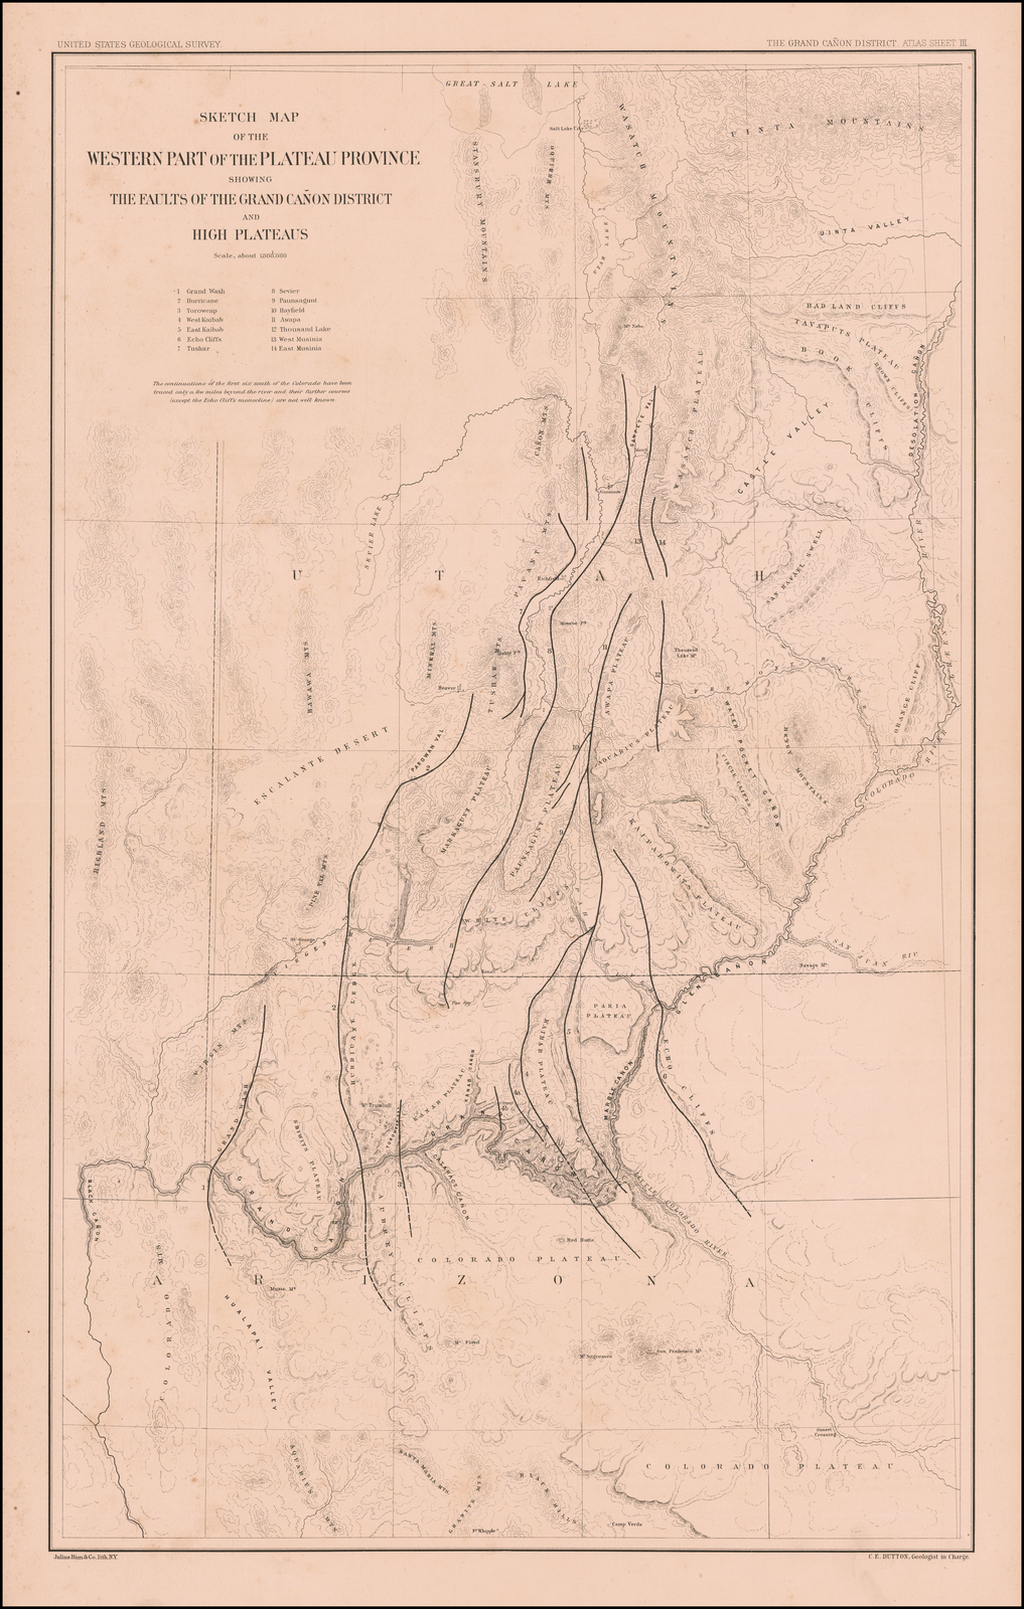 Sketch Map of the Western Part of the Plateau Province Showing the Faults of the Grand Cañon District and High Plateaus By Clarence E. Dutton